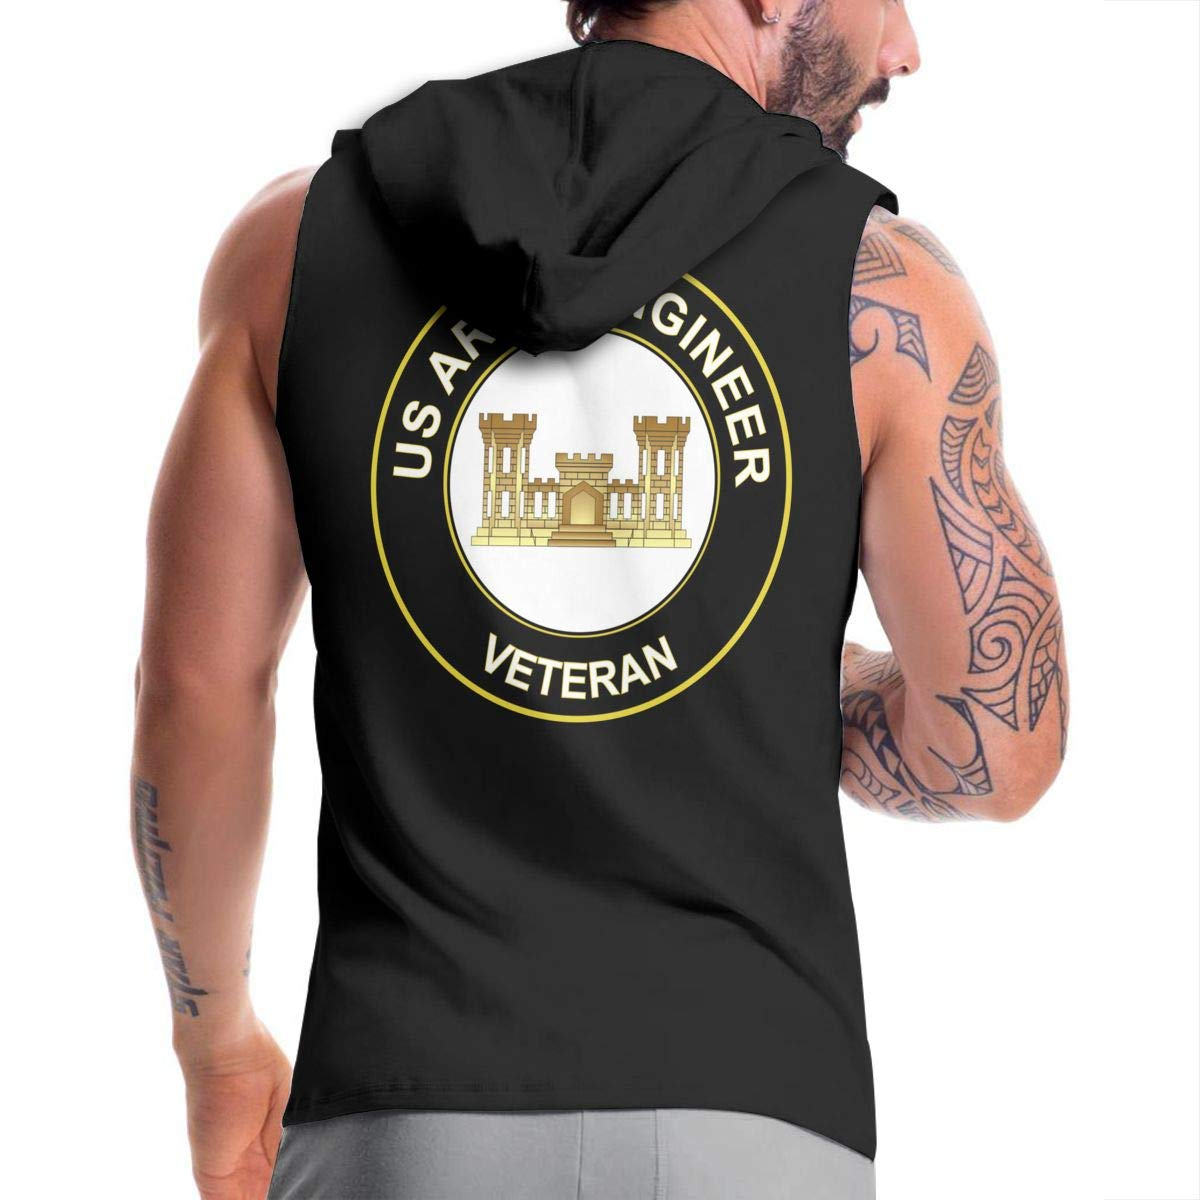 Ice-Long Out X US Army Veteran Army Engineer Mens Fashion Sleeveless Zip-up Hoodie Black with Pocket